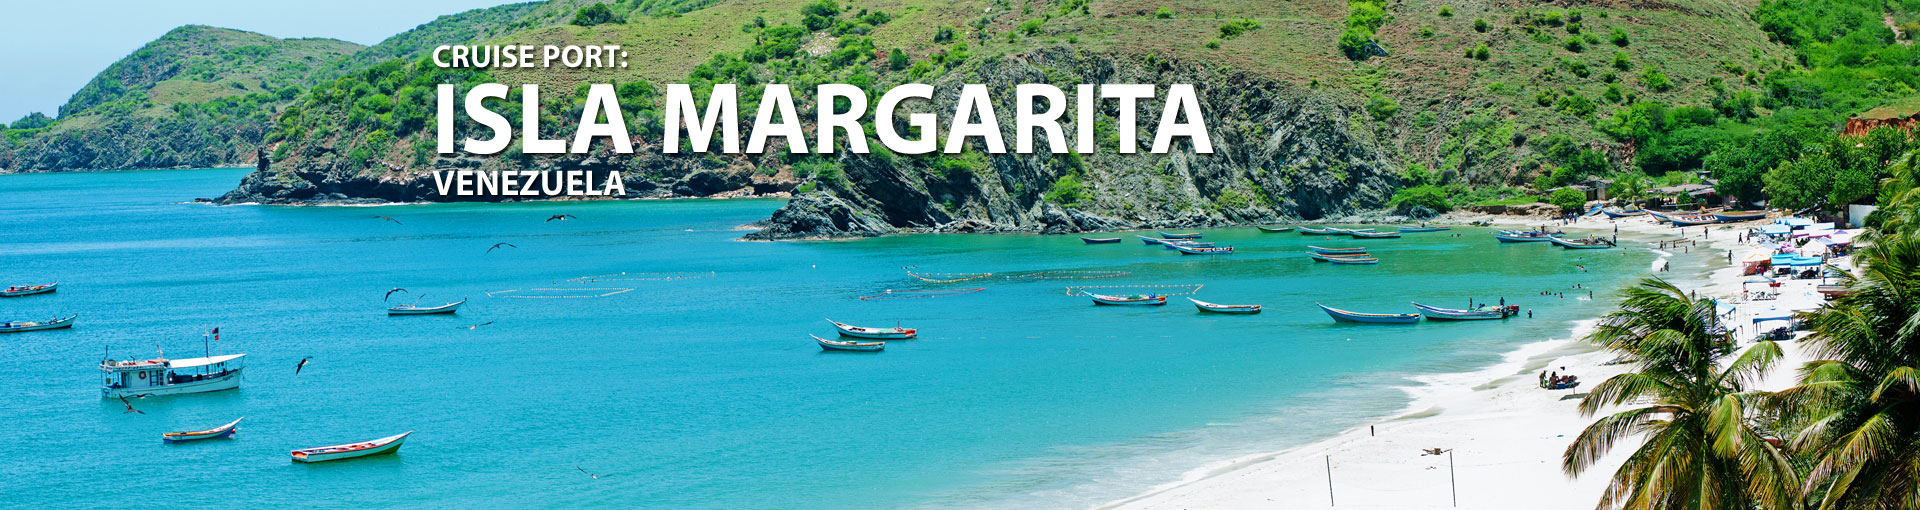 Cruises to Isla Margarita, Venezuela